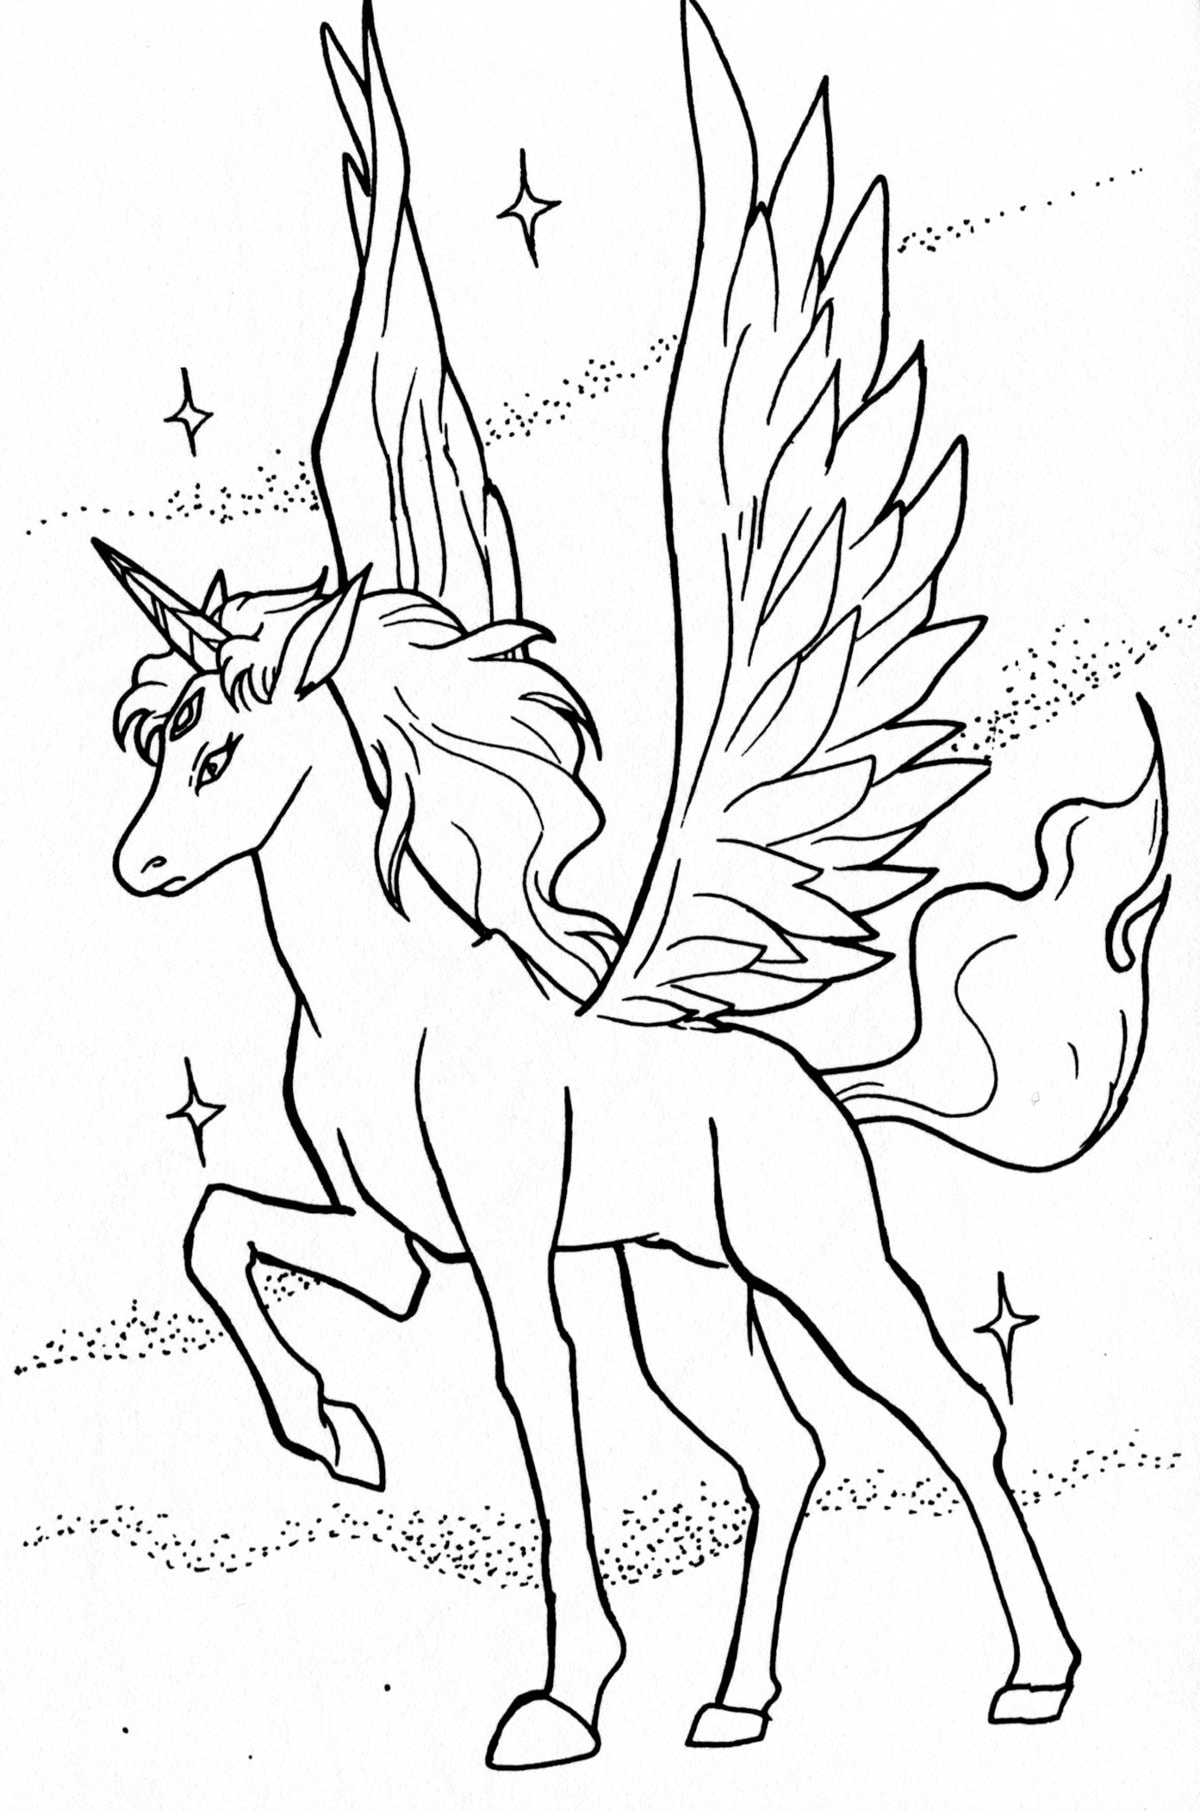 coloring worksheets unicorn unicorn rainbow coloring pages coloring home worksheets coloring unicorn